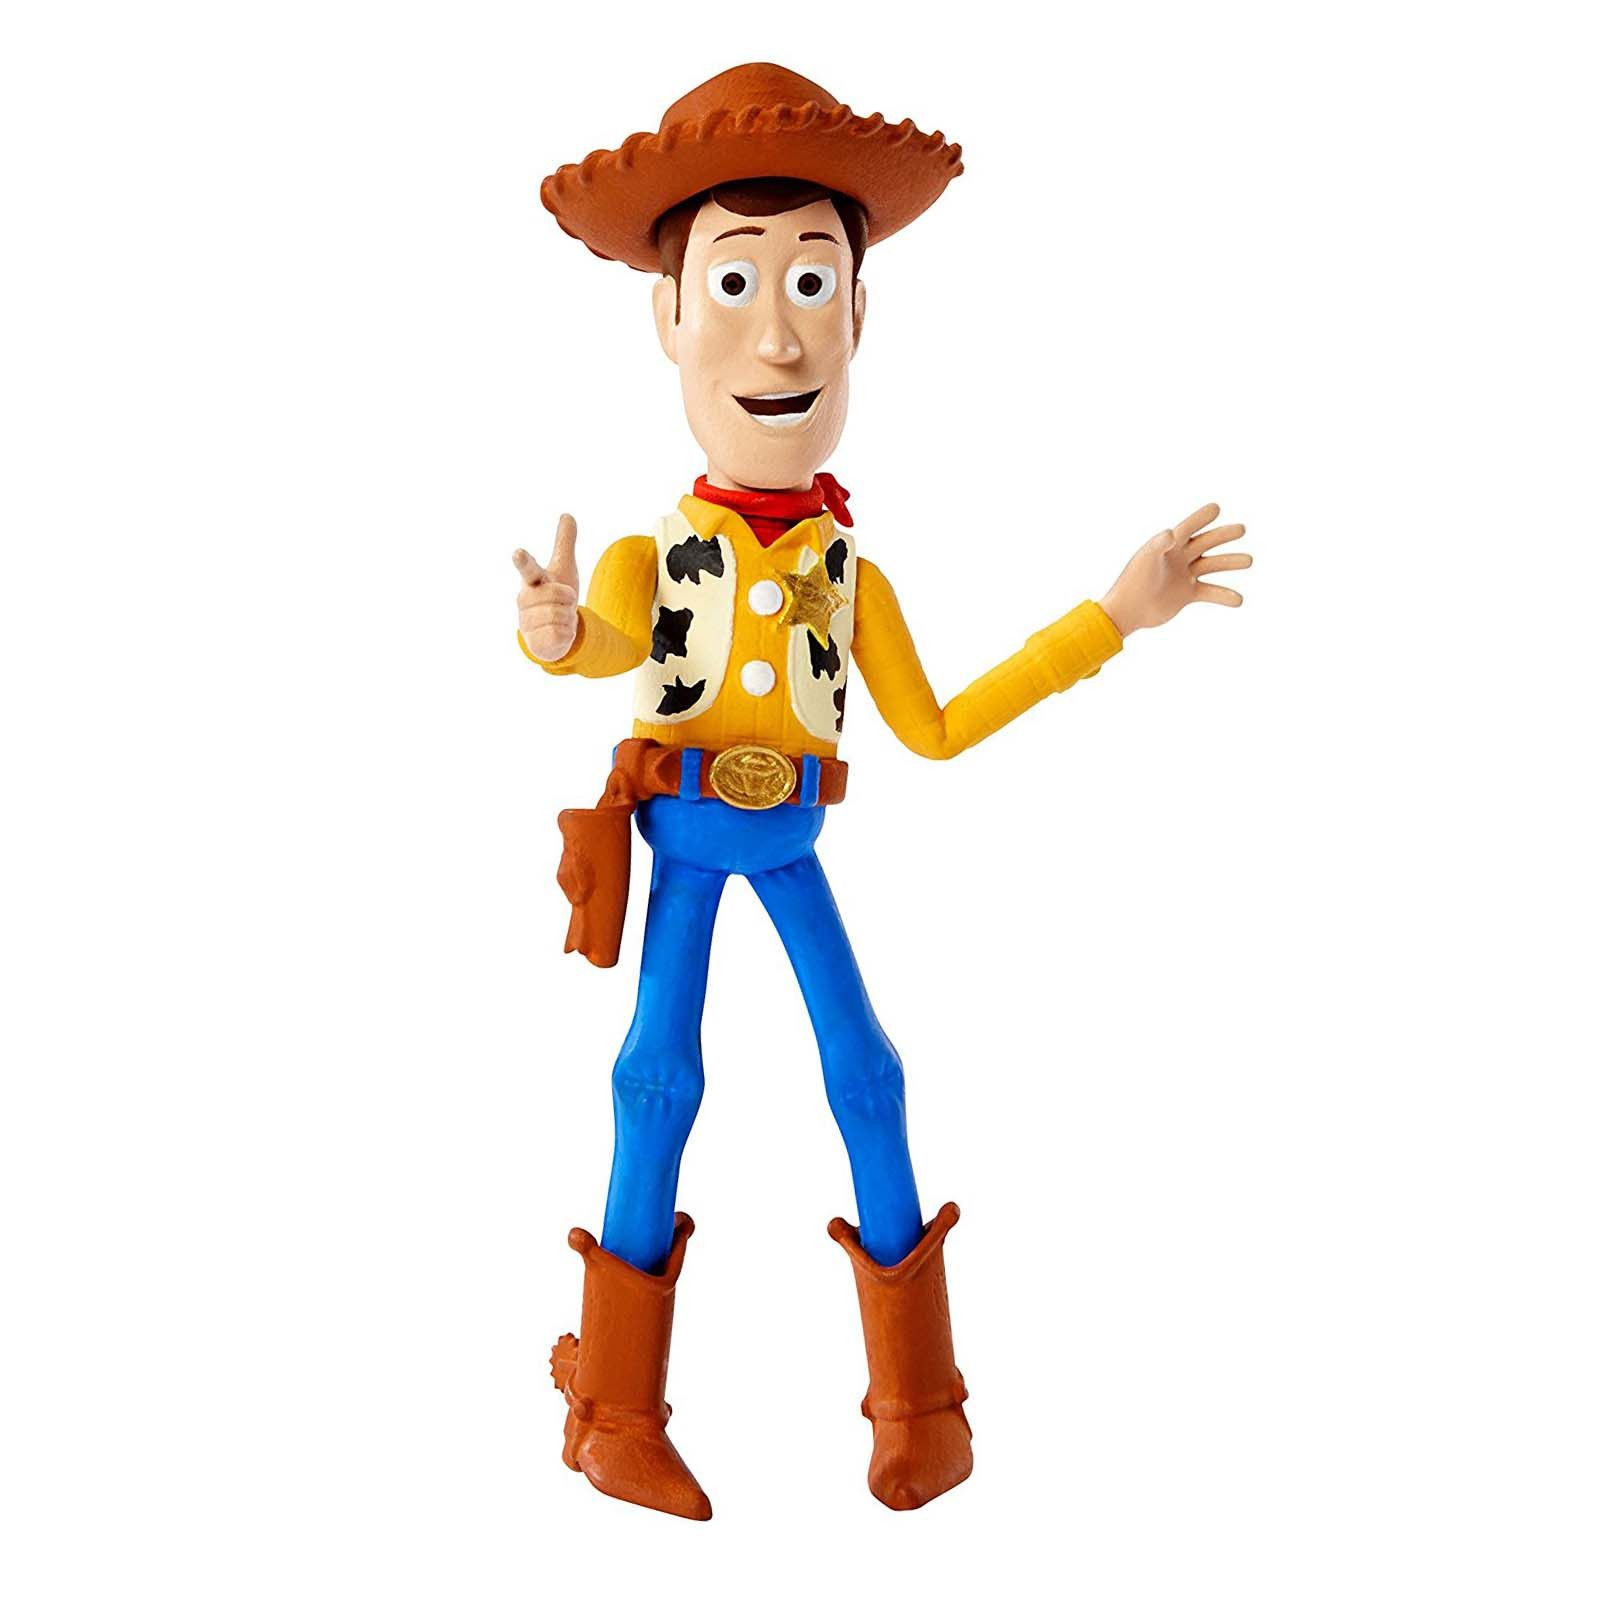 Figurine clipart action drawing Action Action Figure Woody Disney